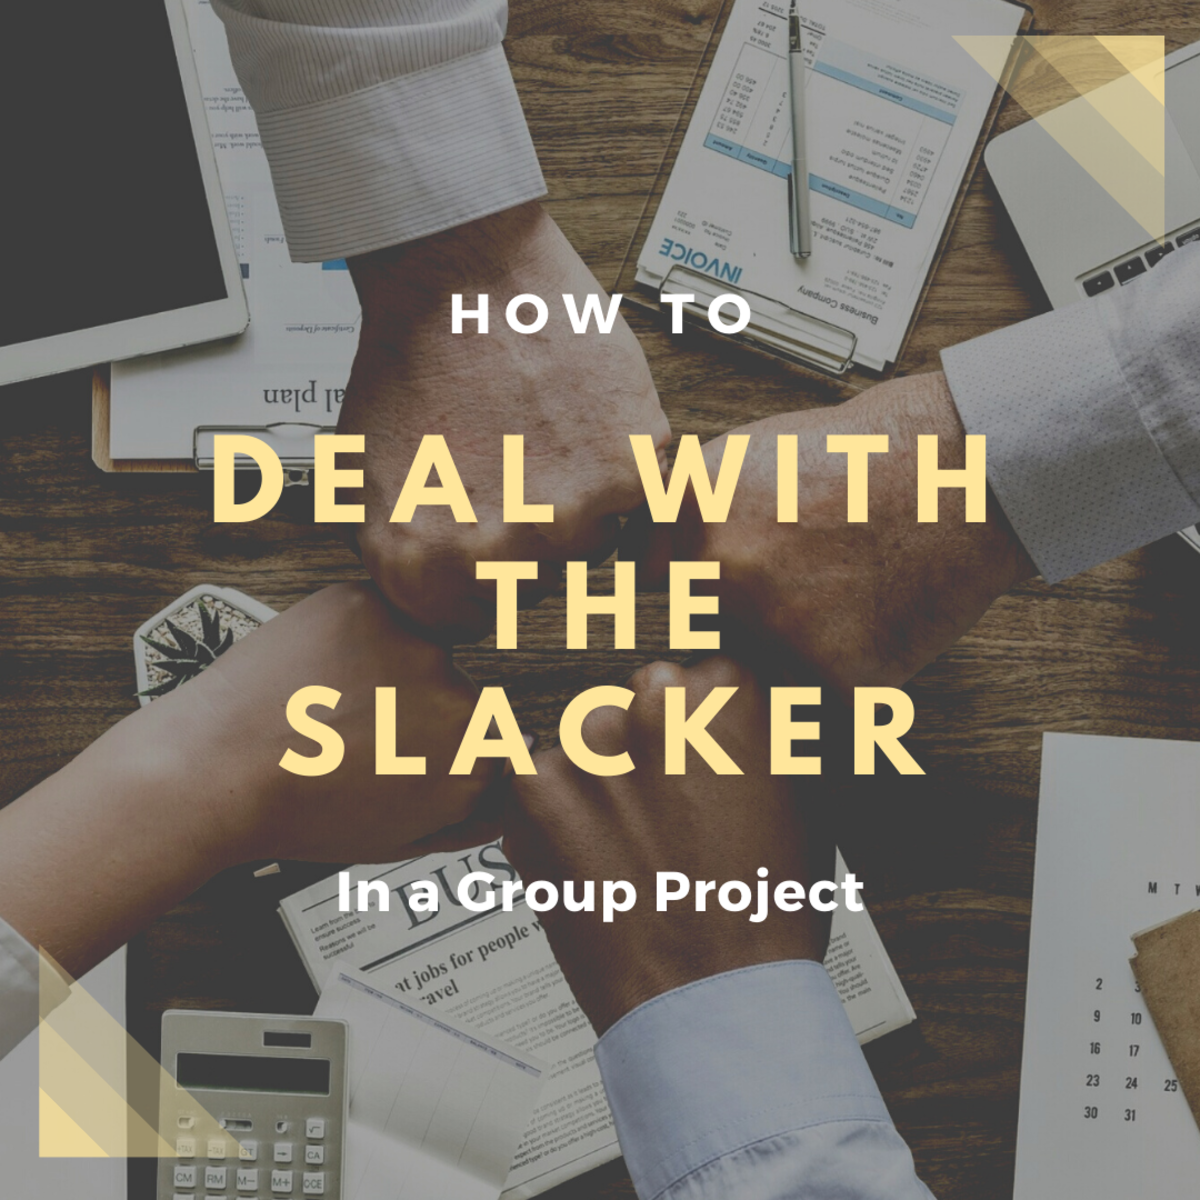 Learn how to deal with the slacker in a productive way.